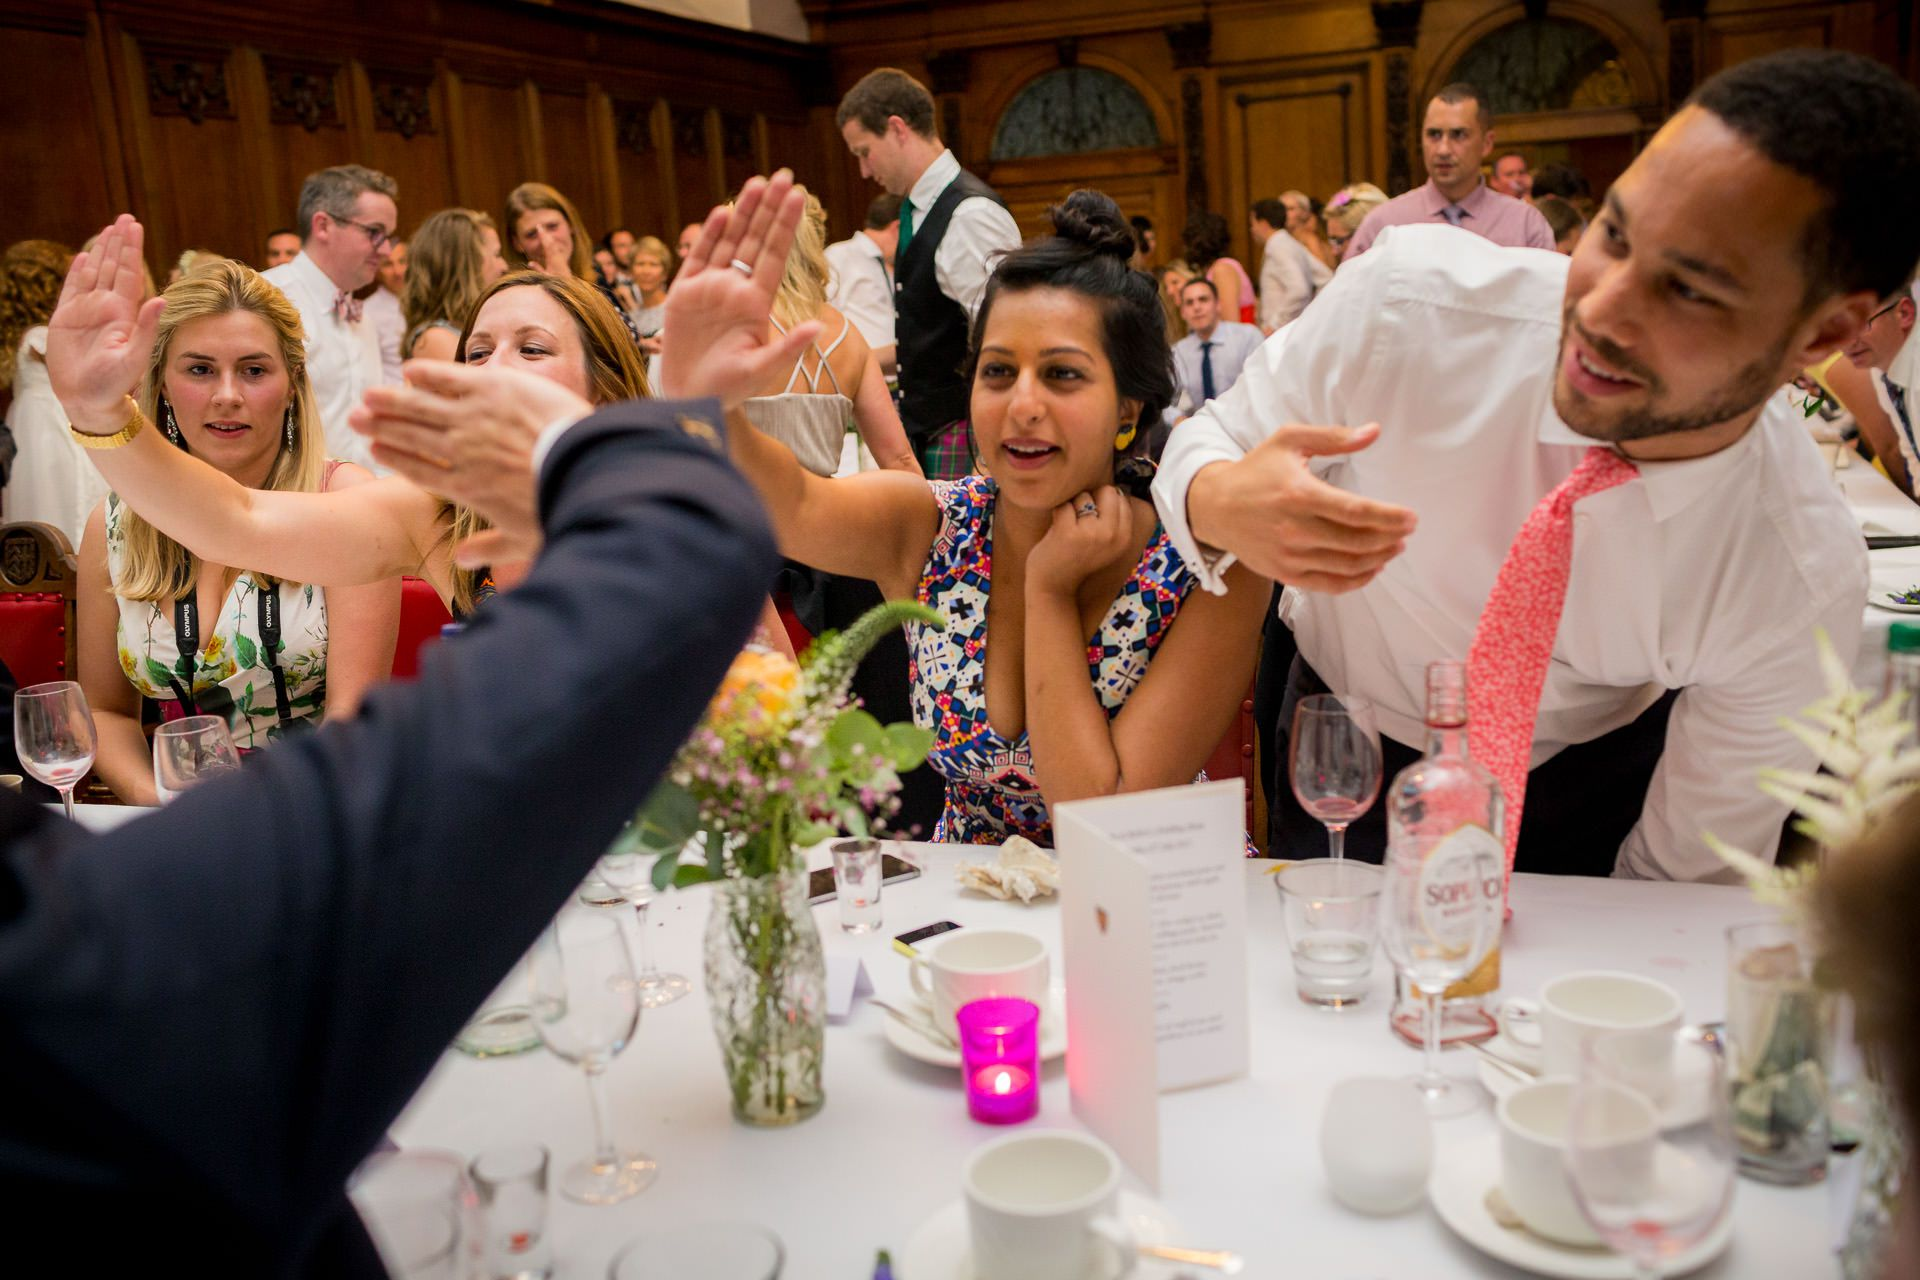 guests at the wedding table